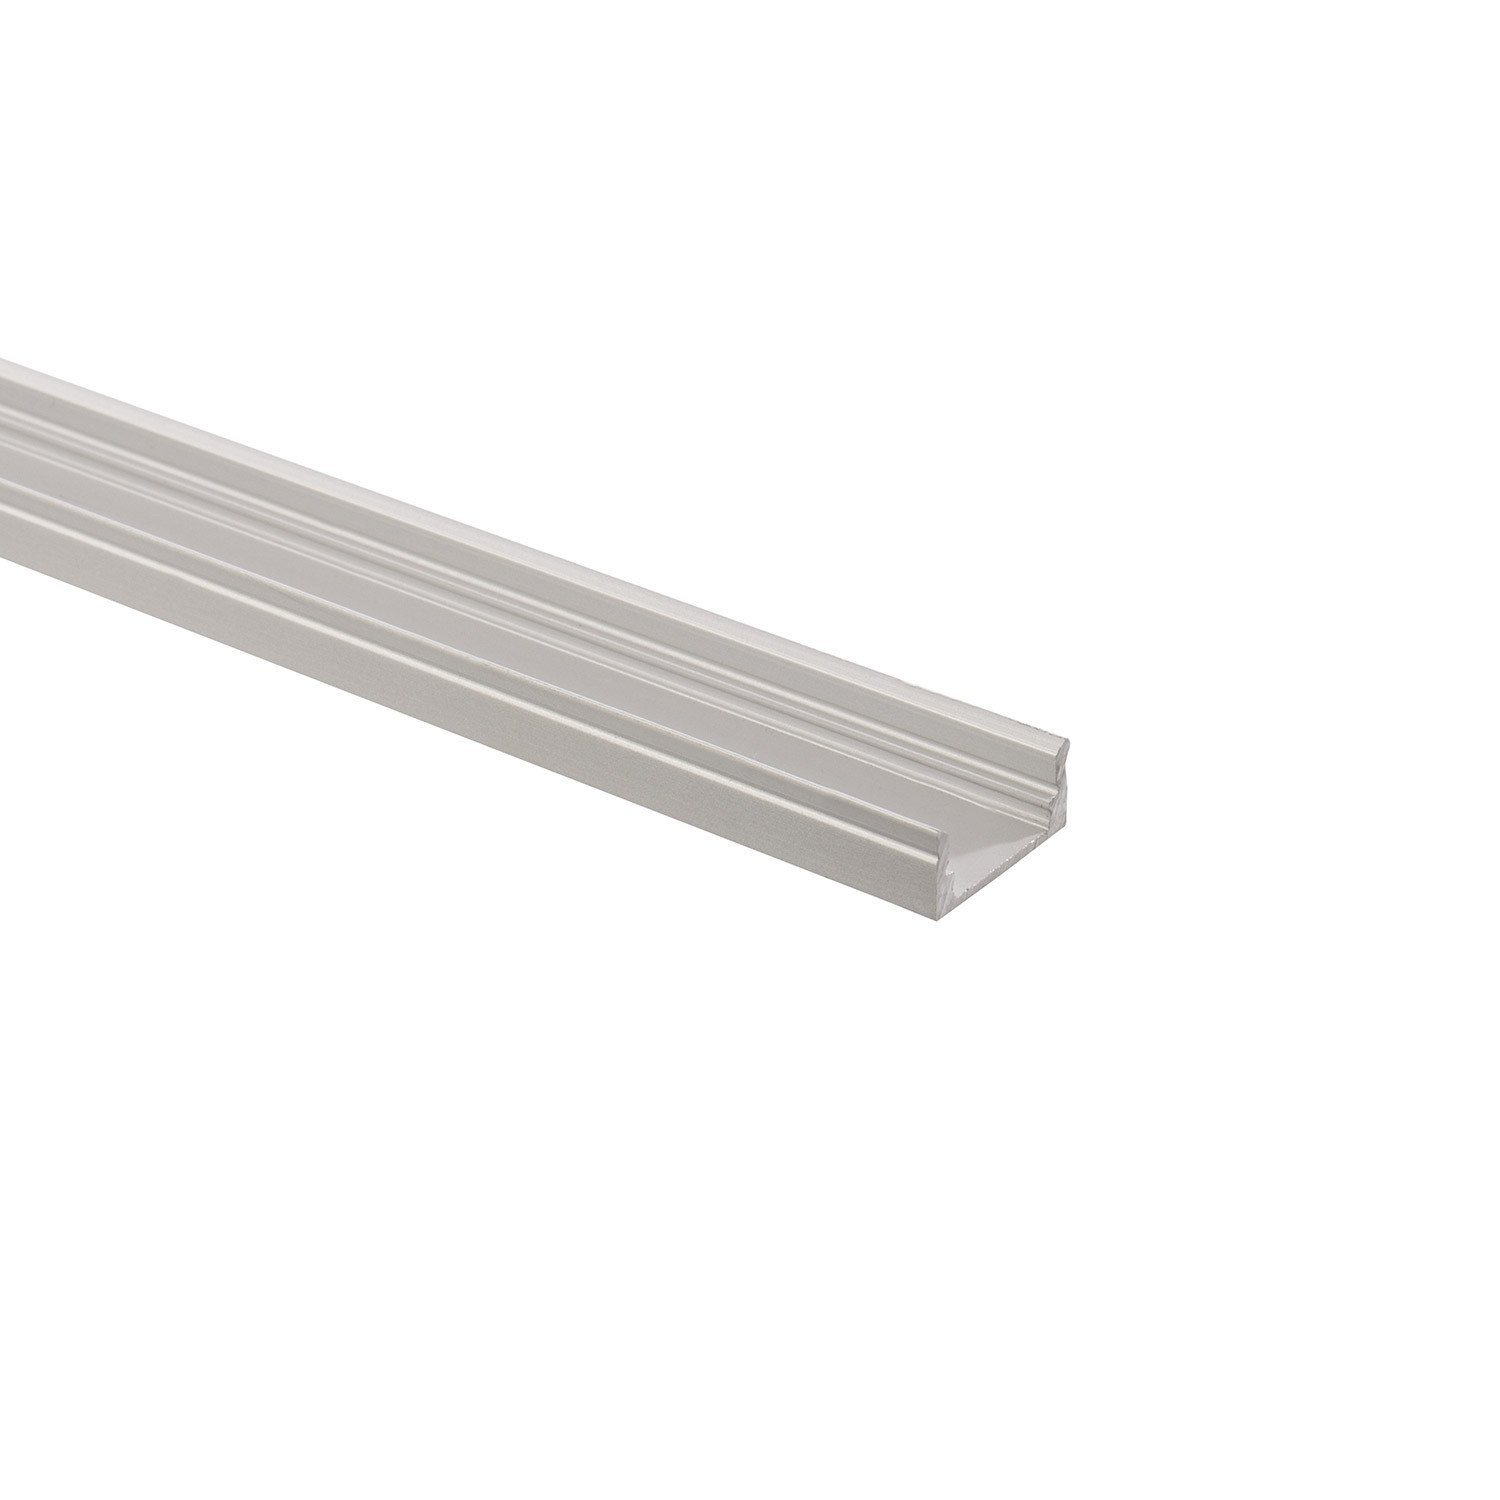 TECHBREY Aluminum Profile Surface 1m For LED Strips